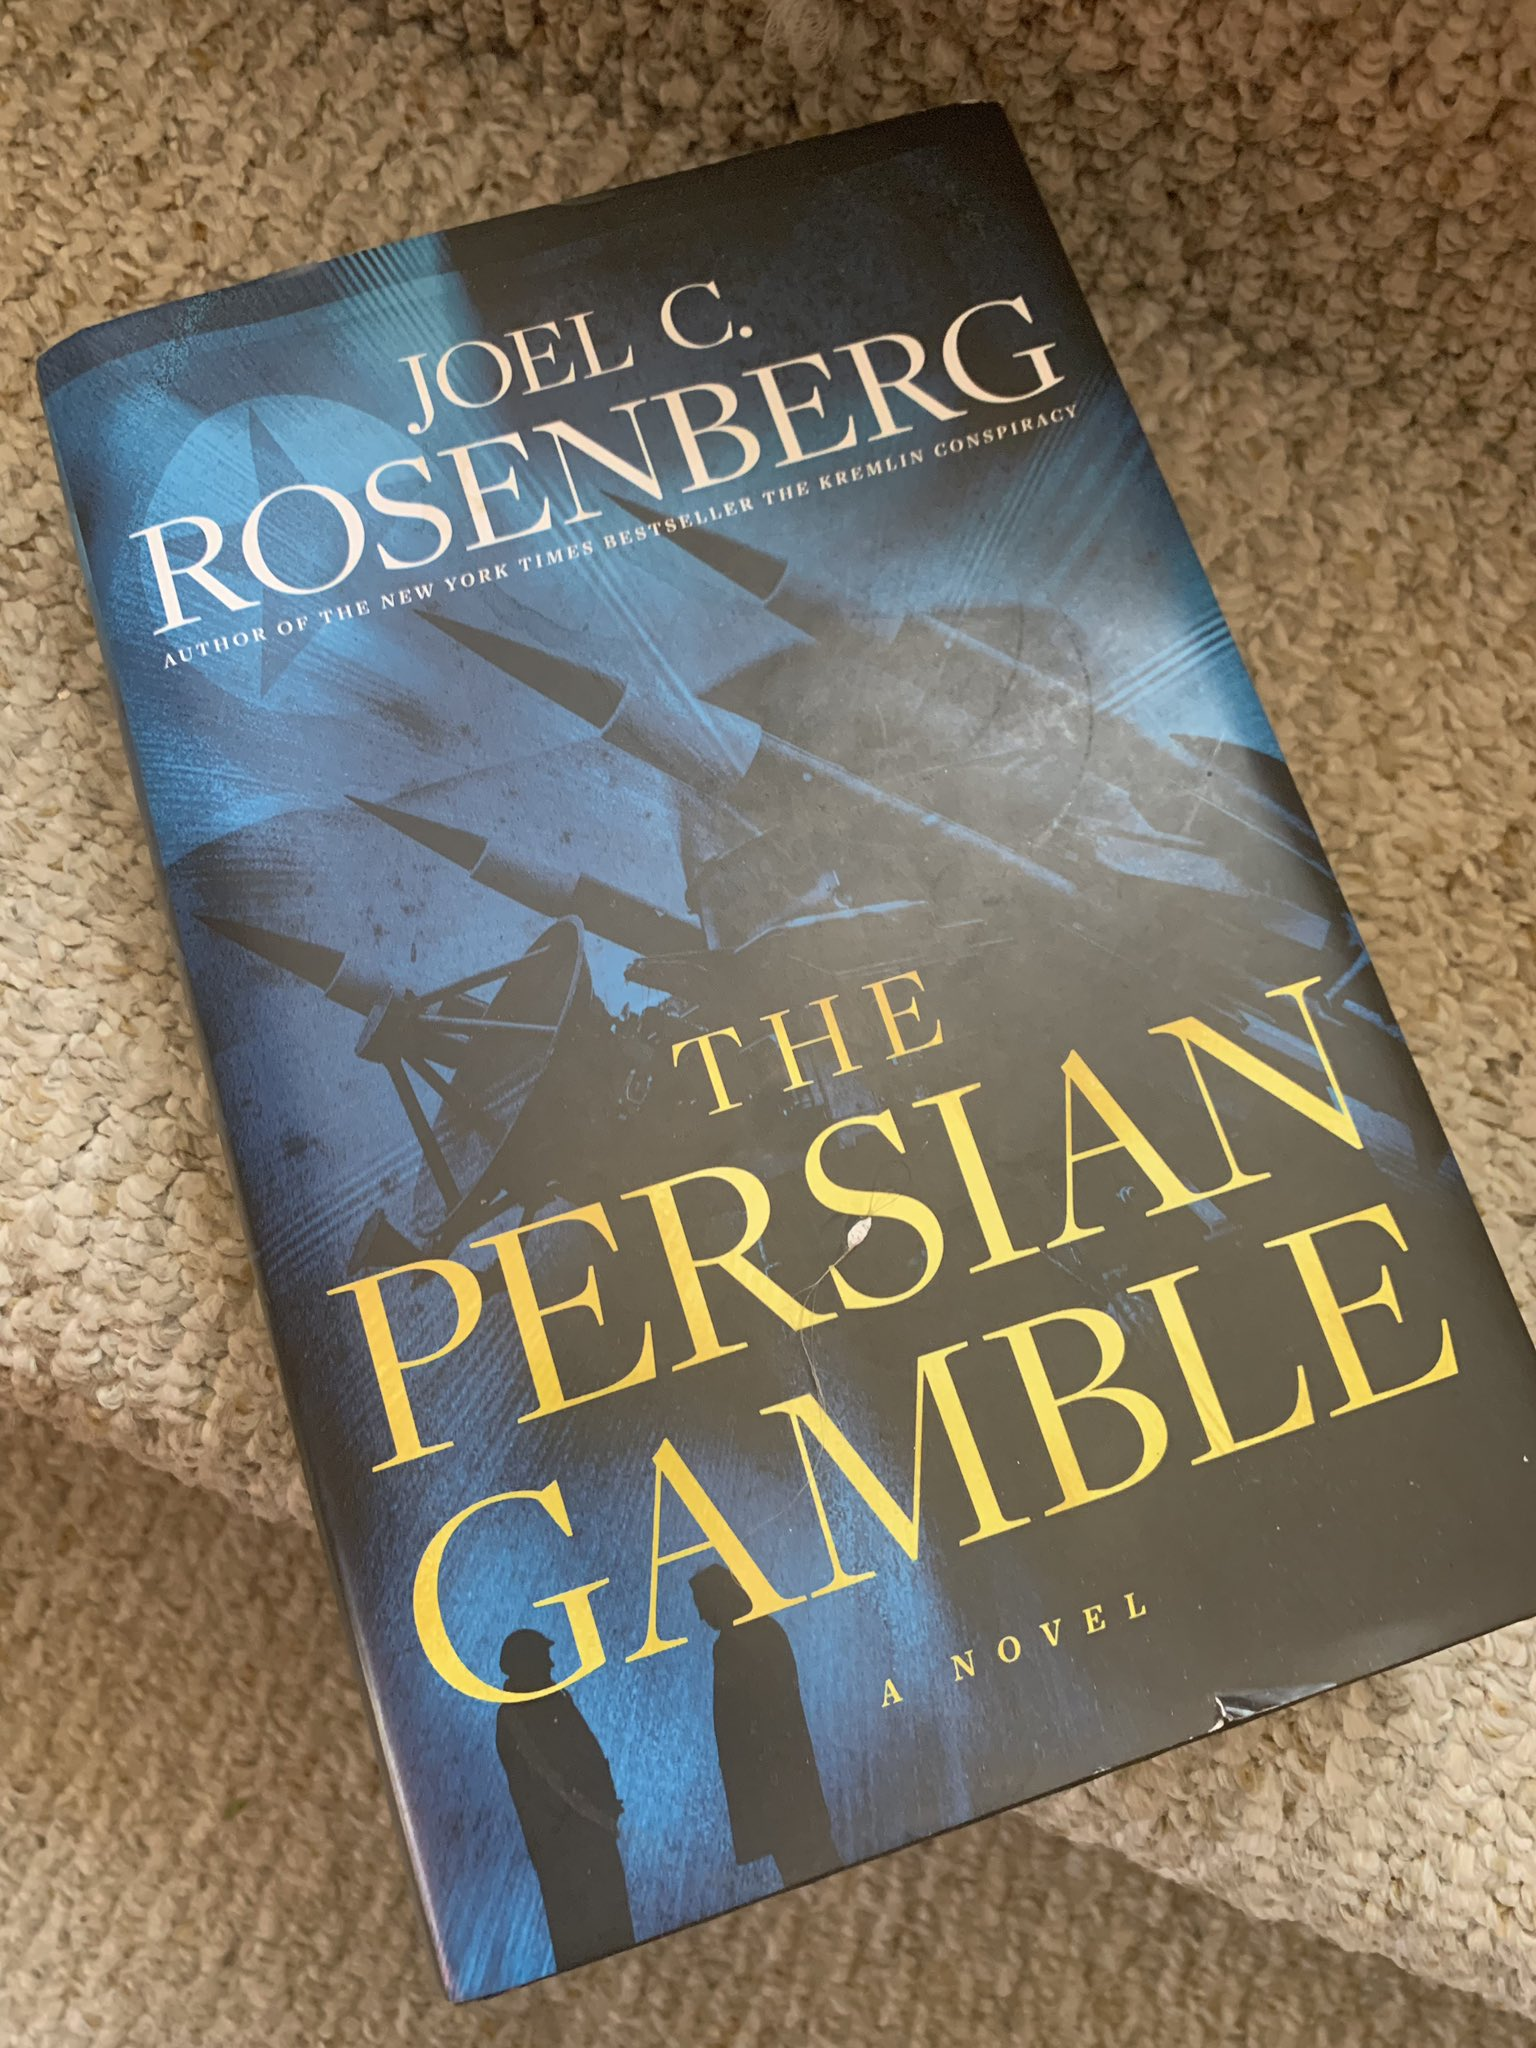 Sean Spicer: Could not put down the latest best selling book by @JoelCRosenberg #thepersiangamble - ...